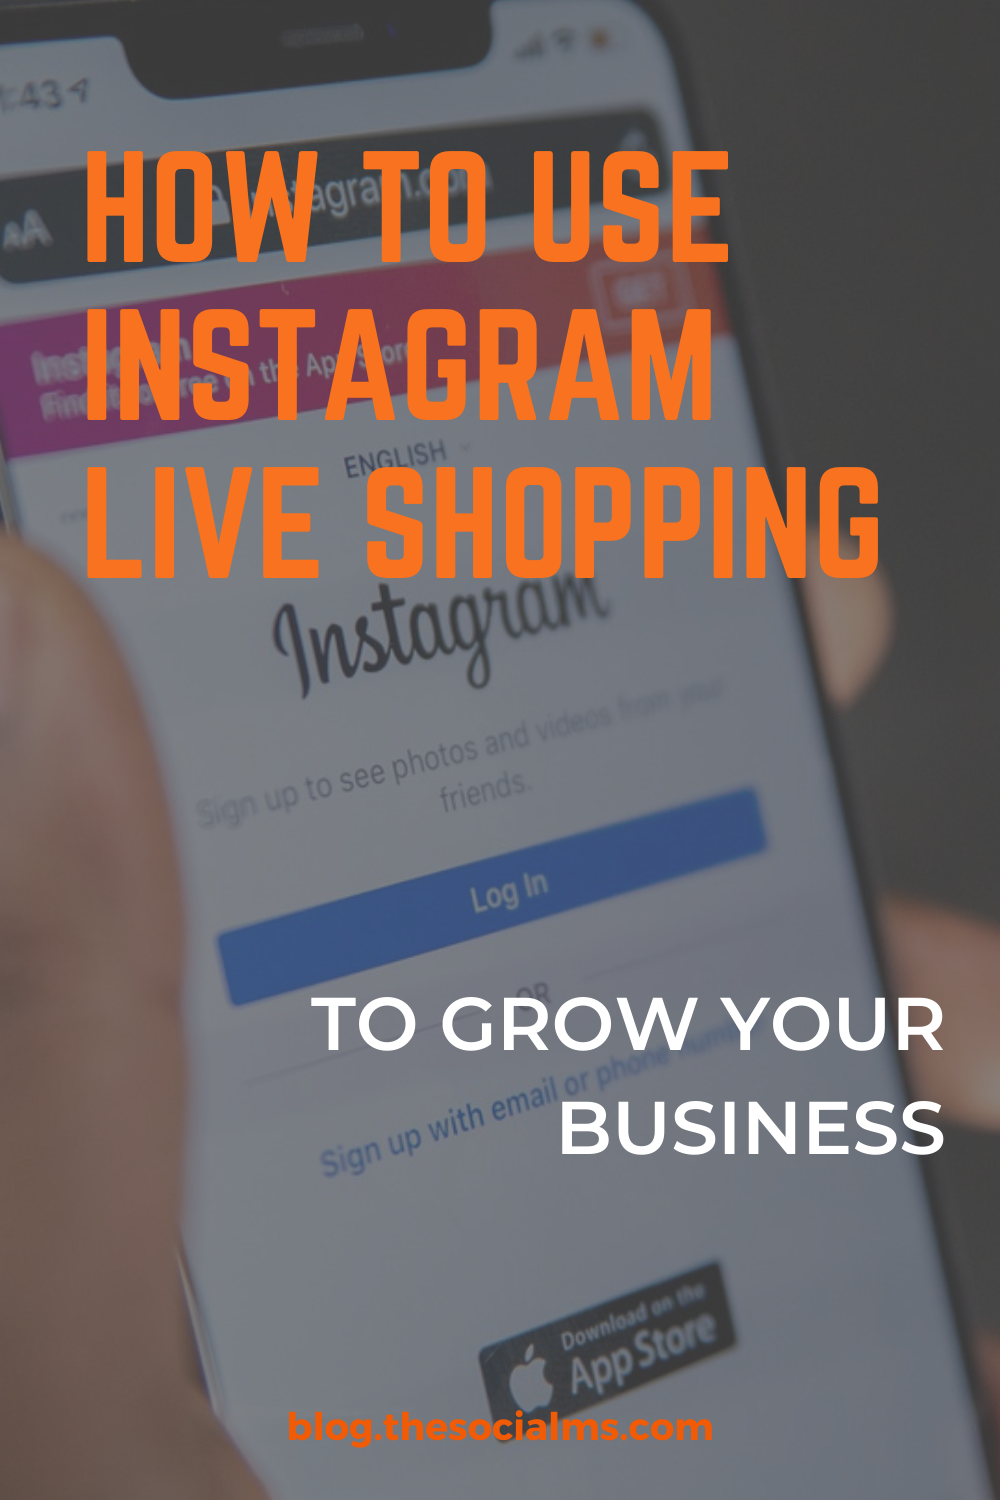 Not long after its release, Instagram took social media by storm. Instagram is now becoming a name in e-commerce. Instagram Live Shopping is a new and innovative form of marketing products on Instagram #instagram #instagramfeatures #instagramtips #instagrammarketing